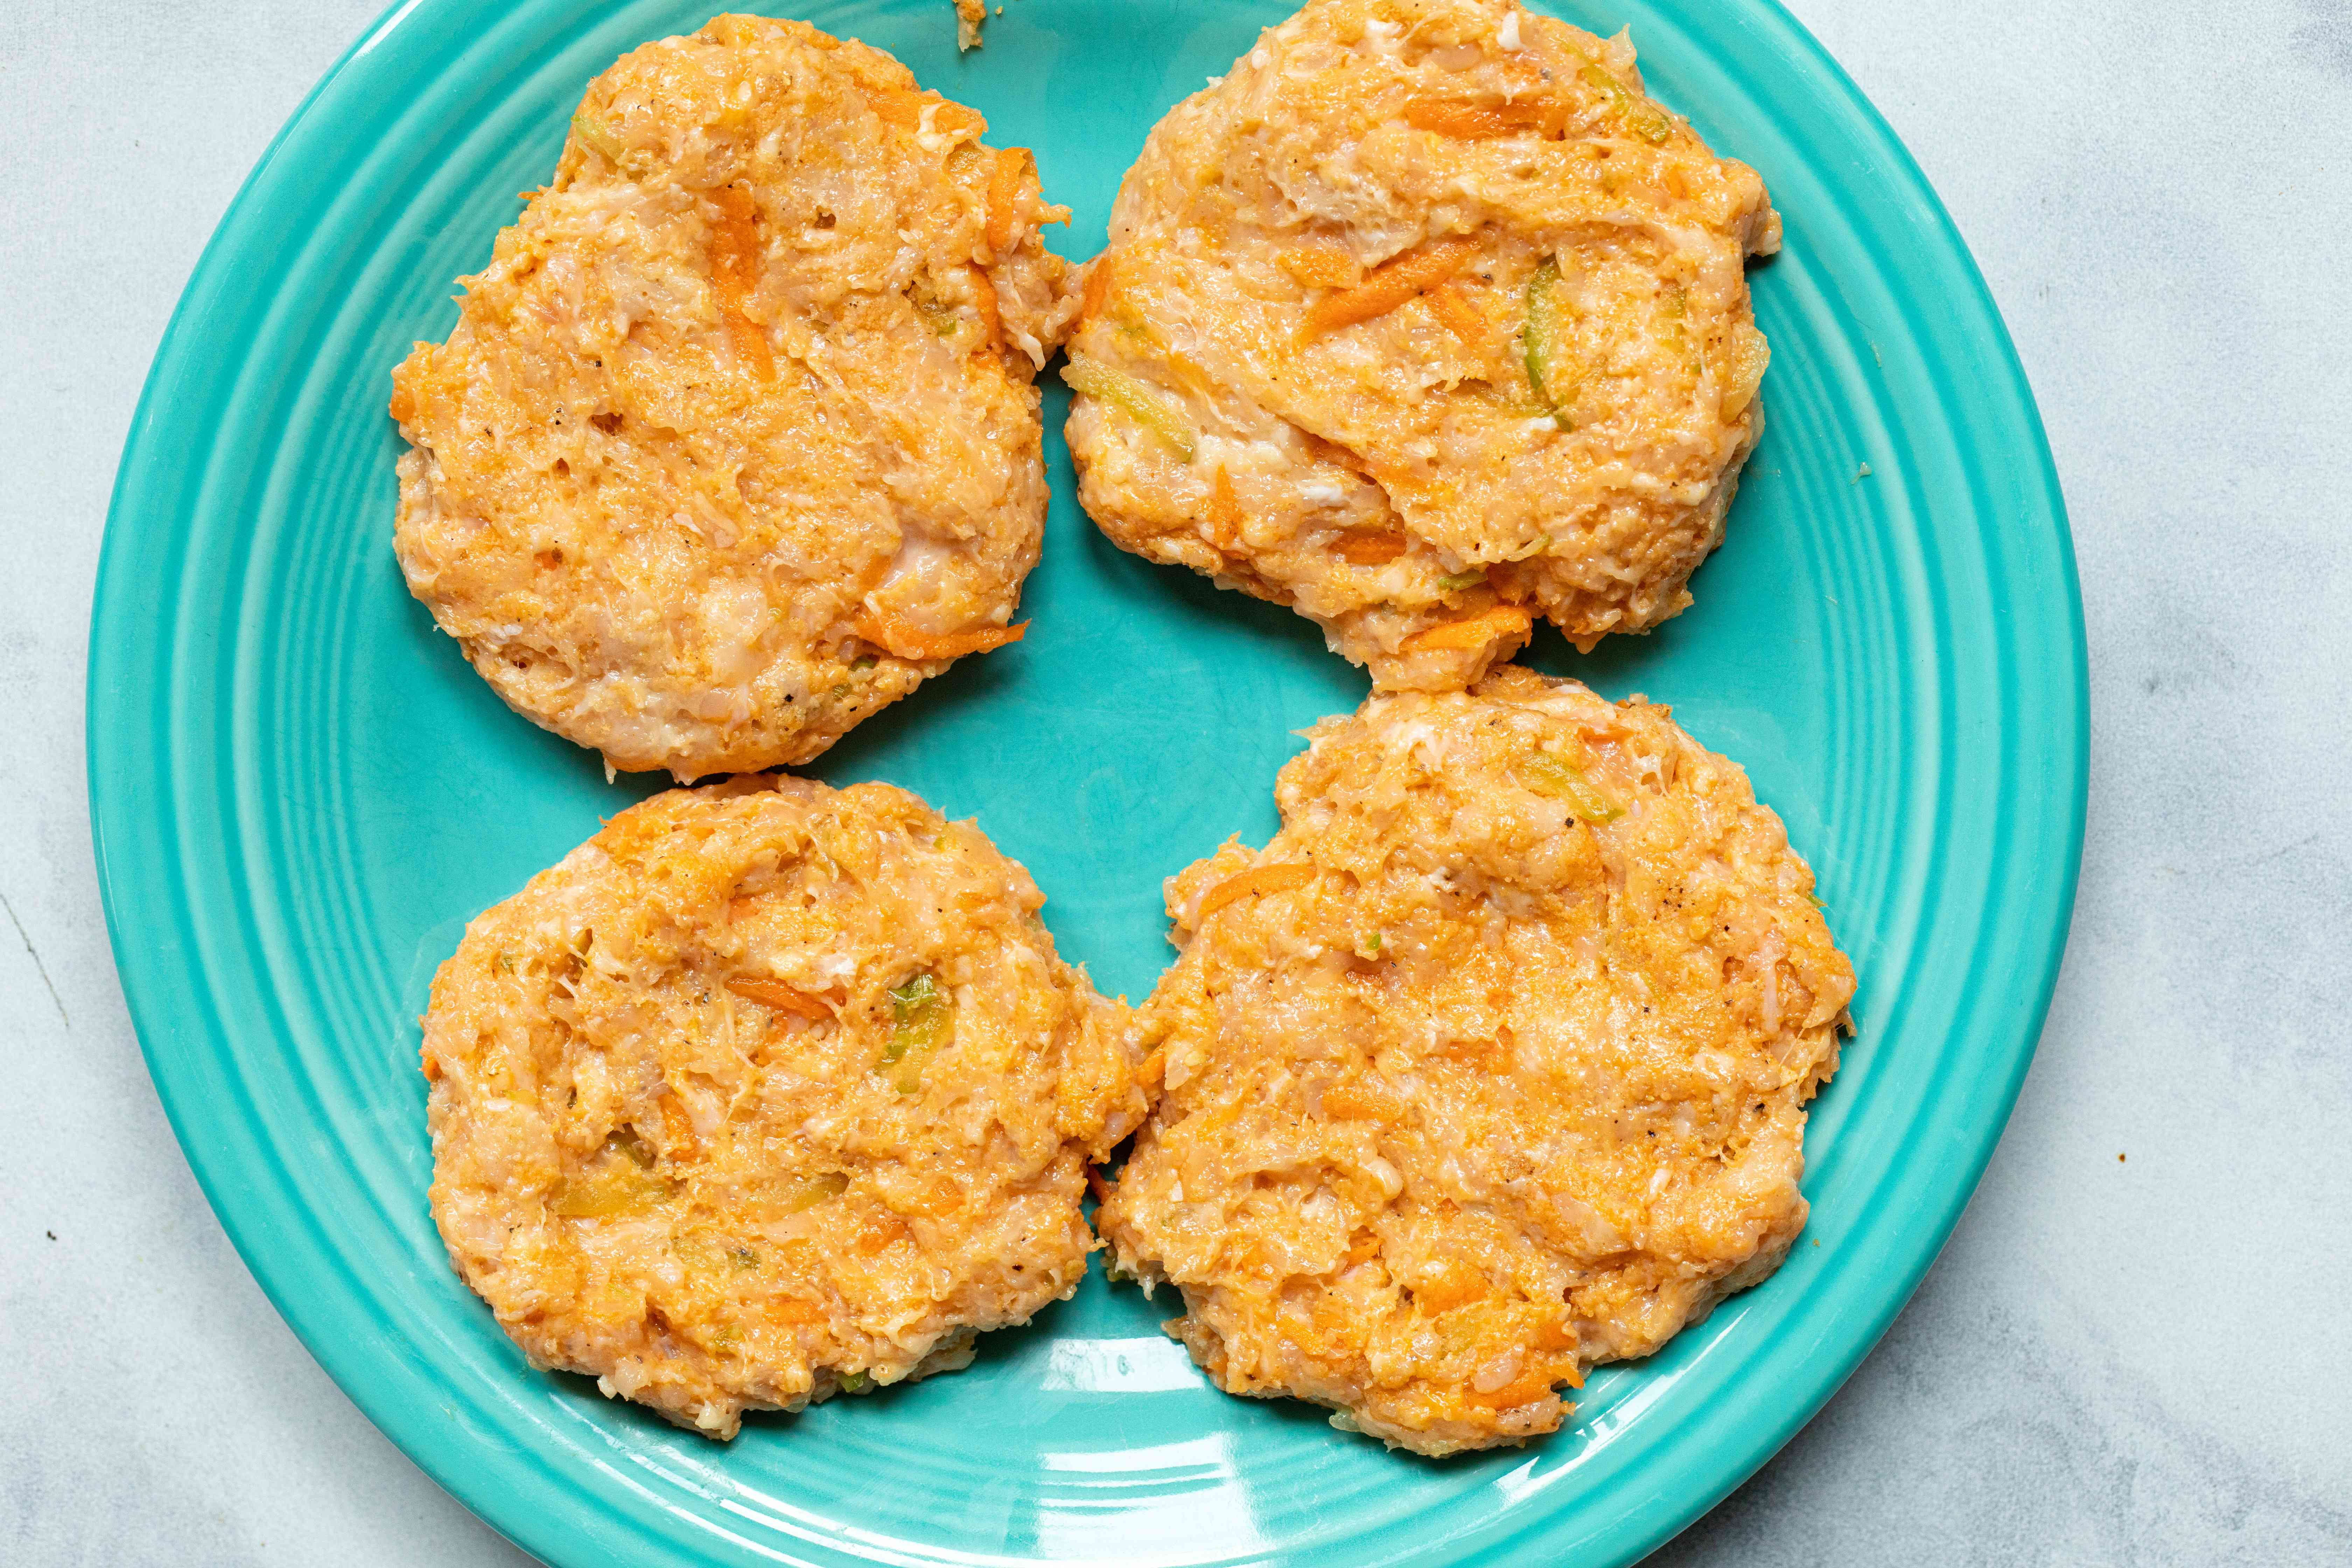 Buffalo chicken burger patties ready to be cooked.